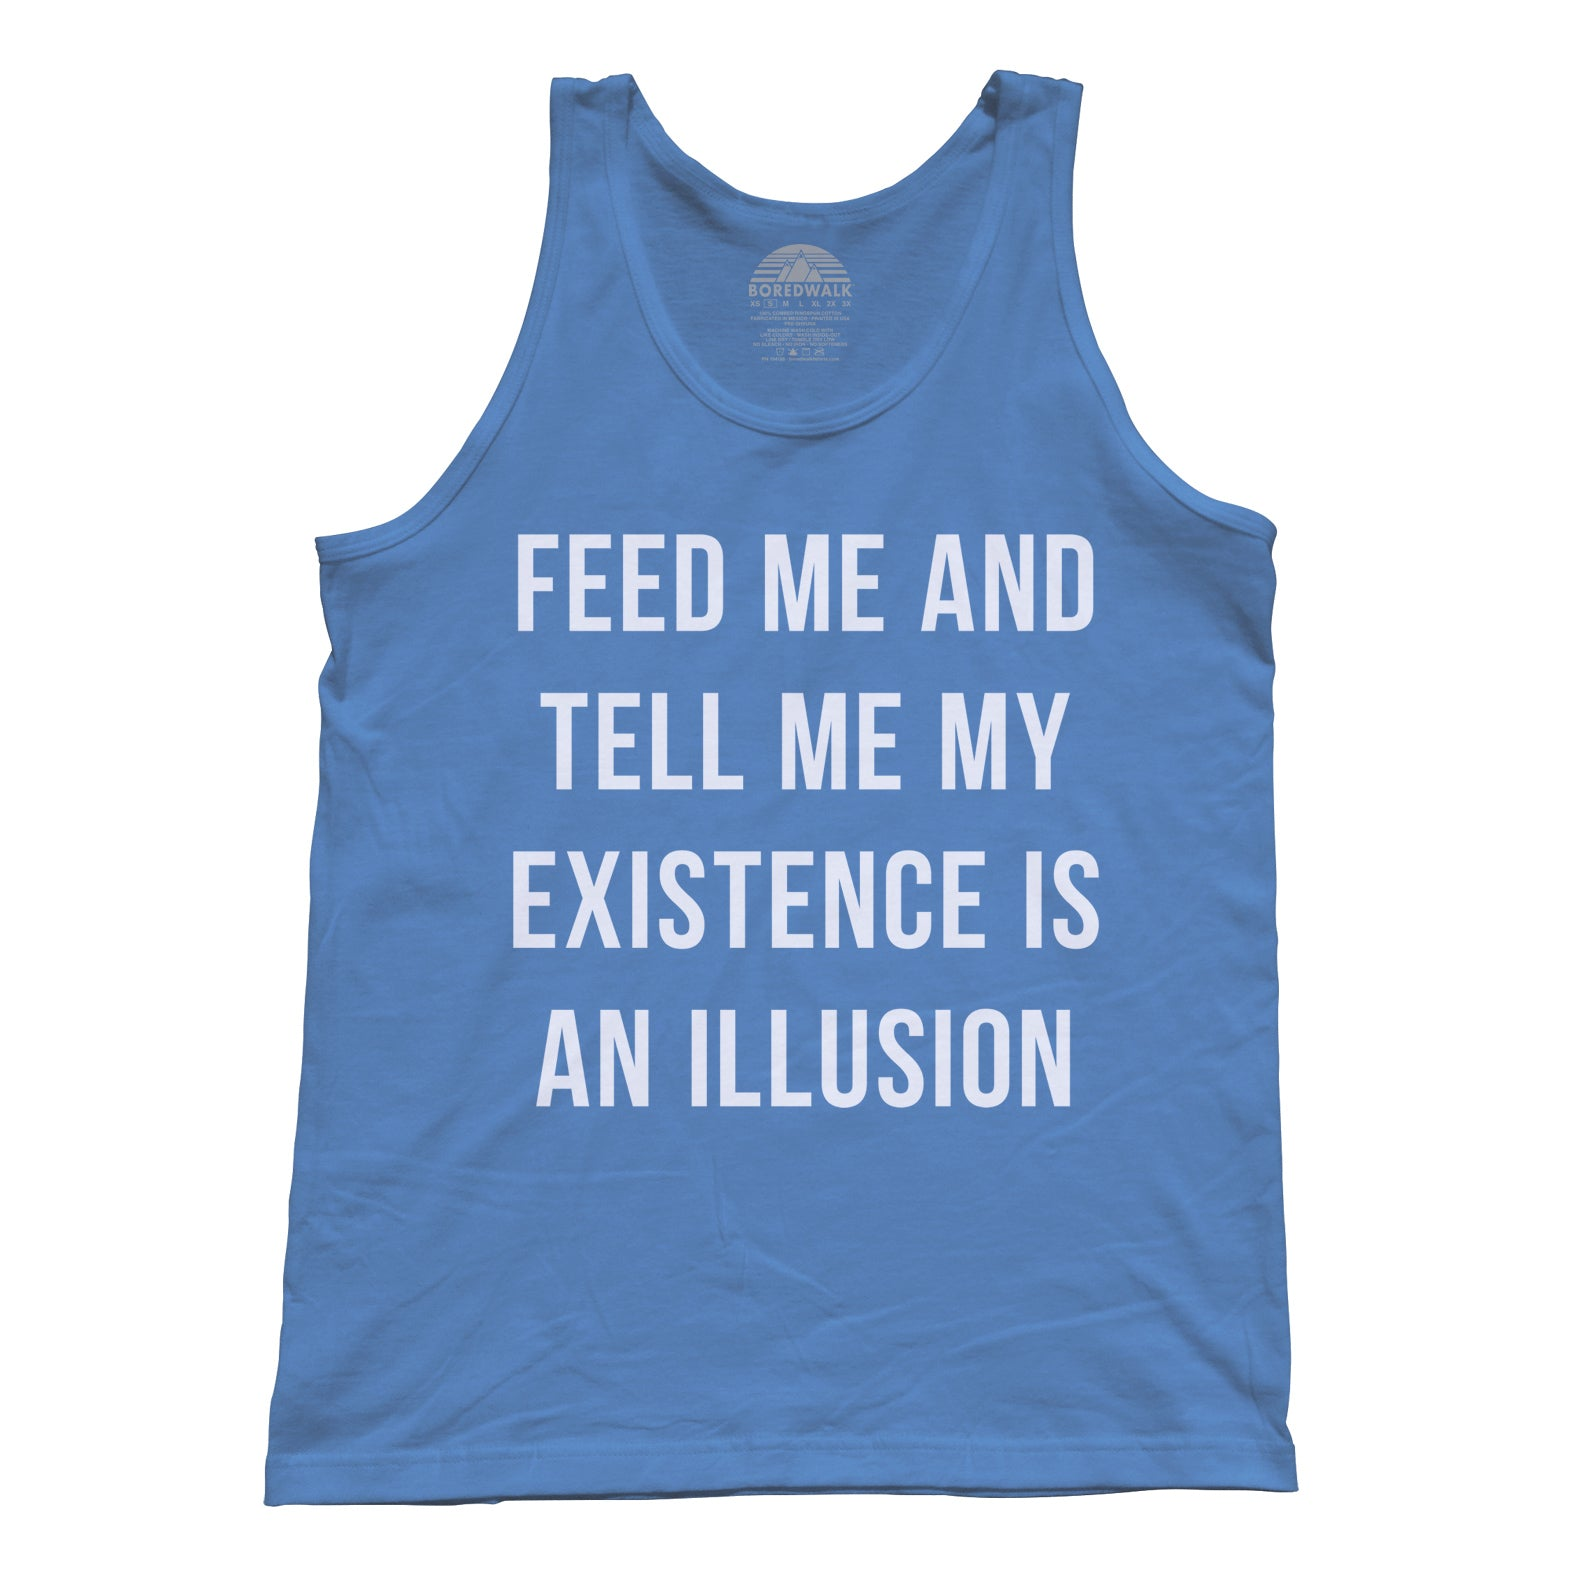 Unisex Feed Me and Tell Me My Existence is an Illusion Tank Top - Existentialism Shirt